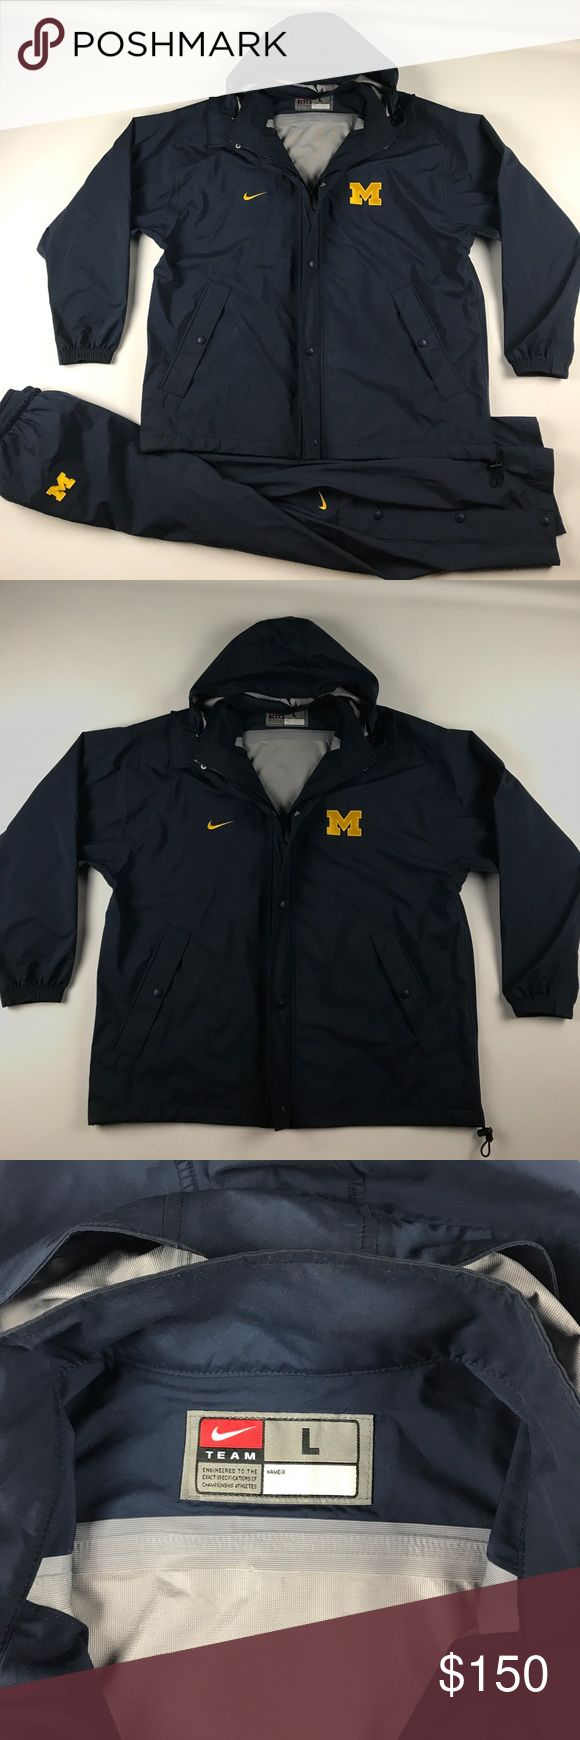 Nike Large 2 Piece Michigan Wolverines Rain Suit Small mark by the front jacket pocket Nike Jackets & Coats Raincoats